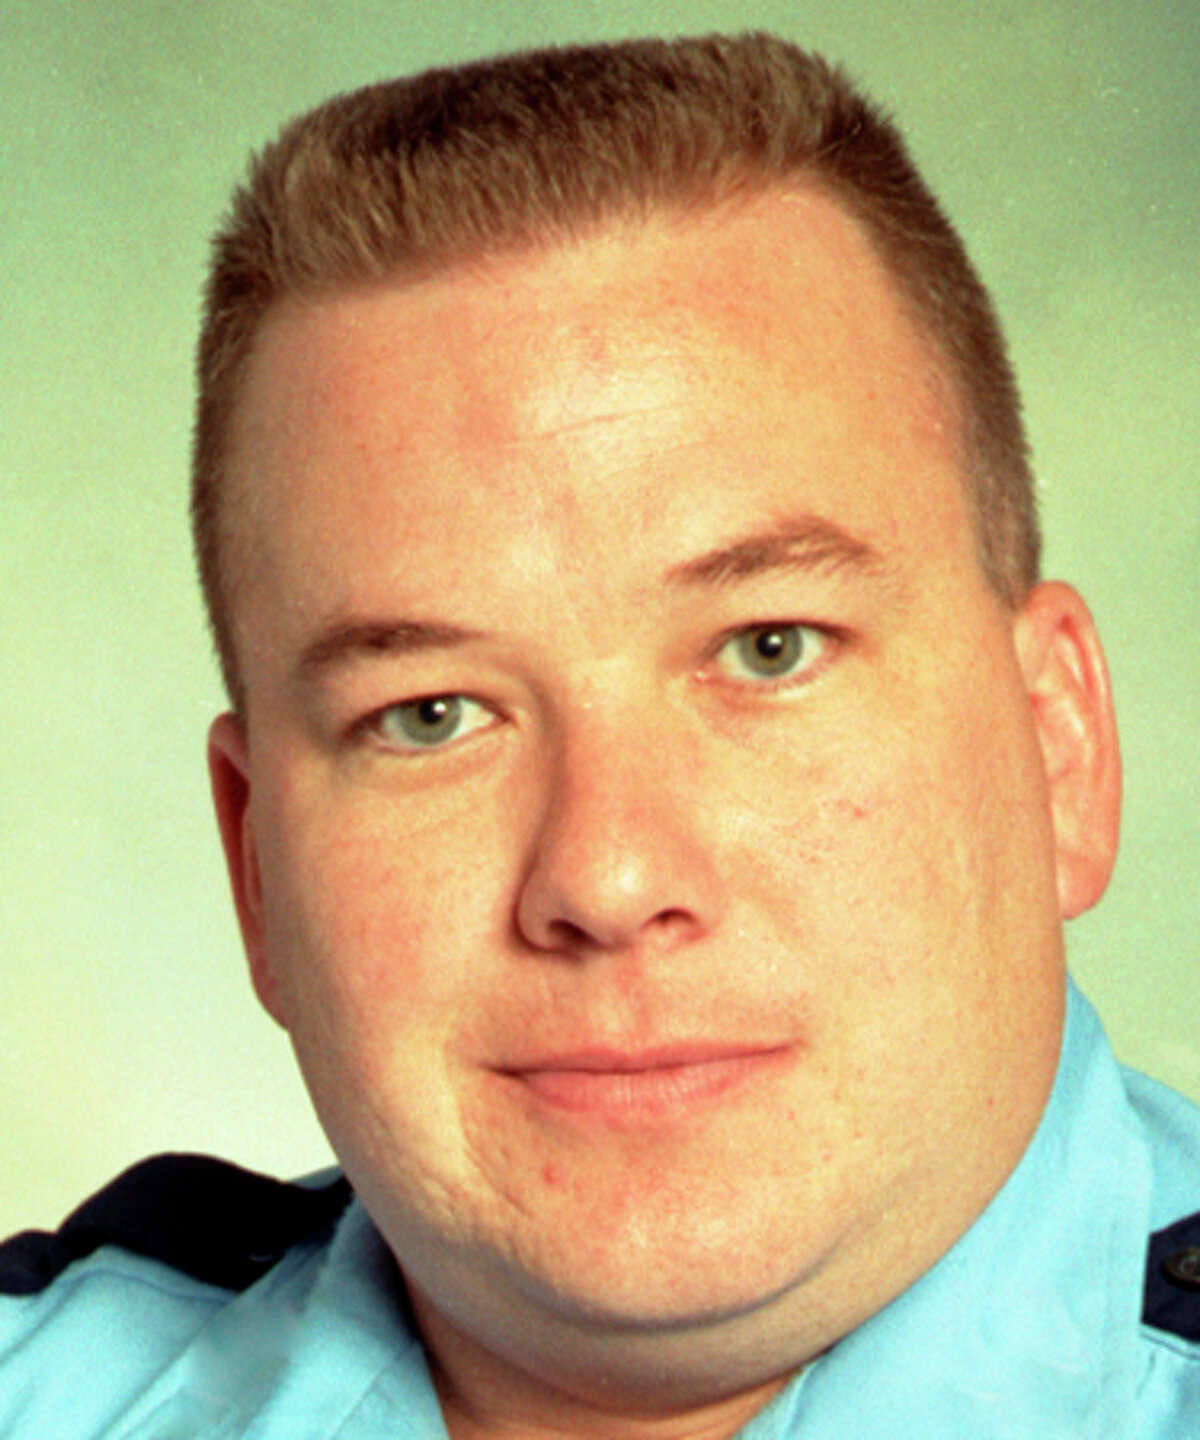 Calley served as a Houston police officer for 25 years.